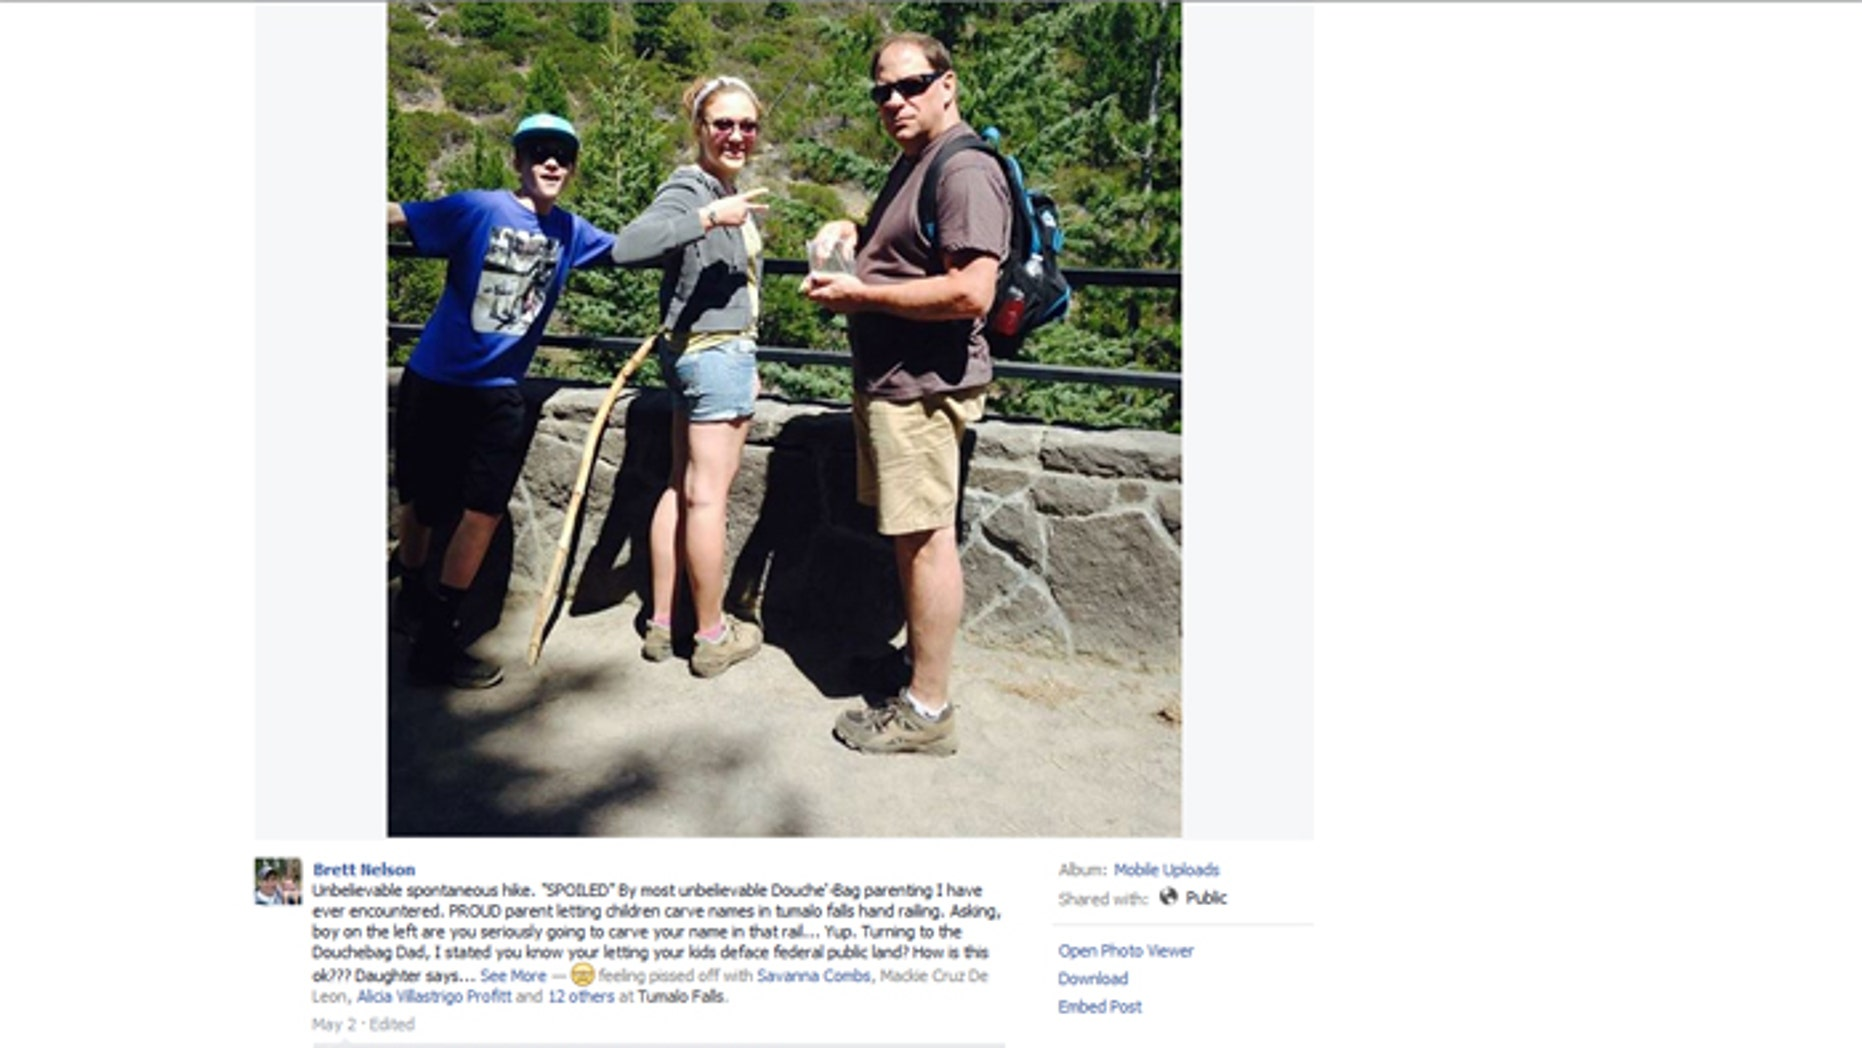 An angry hiker posted this photo online after allegedly seeing the subjects carving initials into a railing.